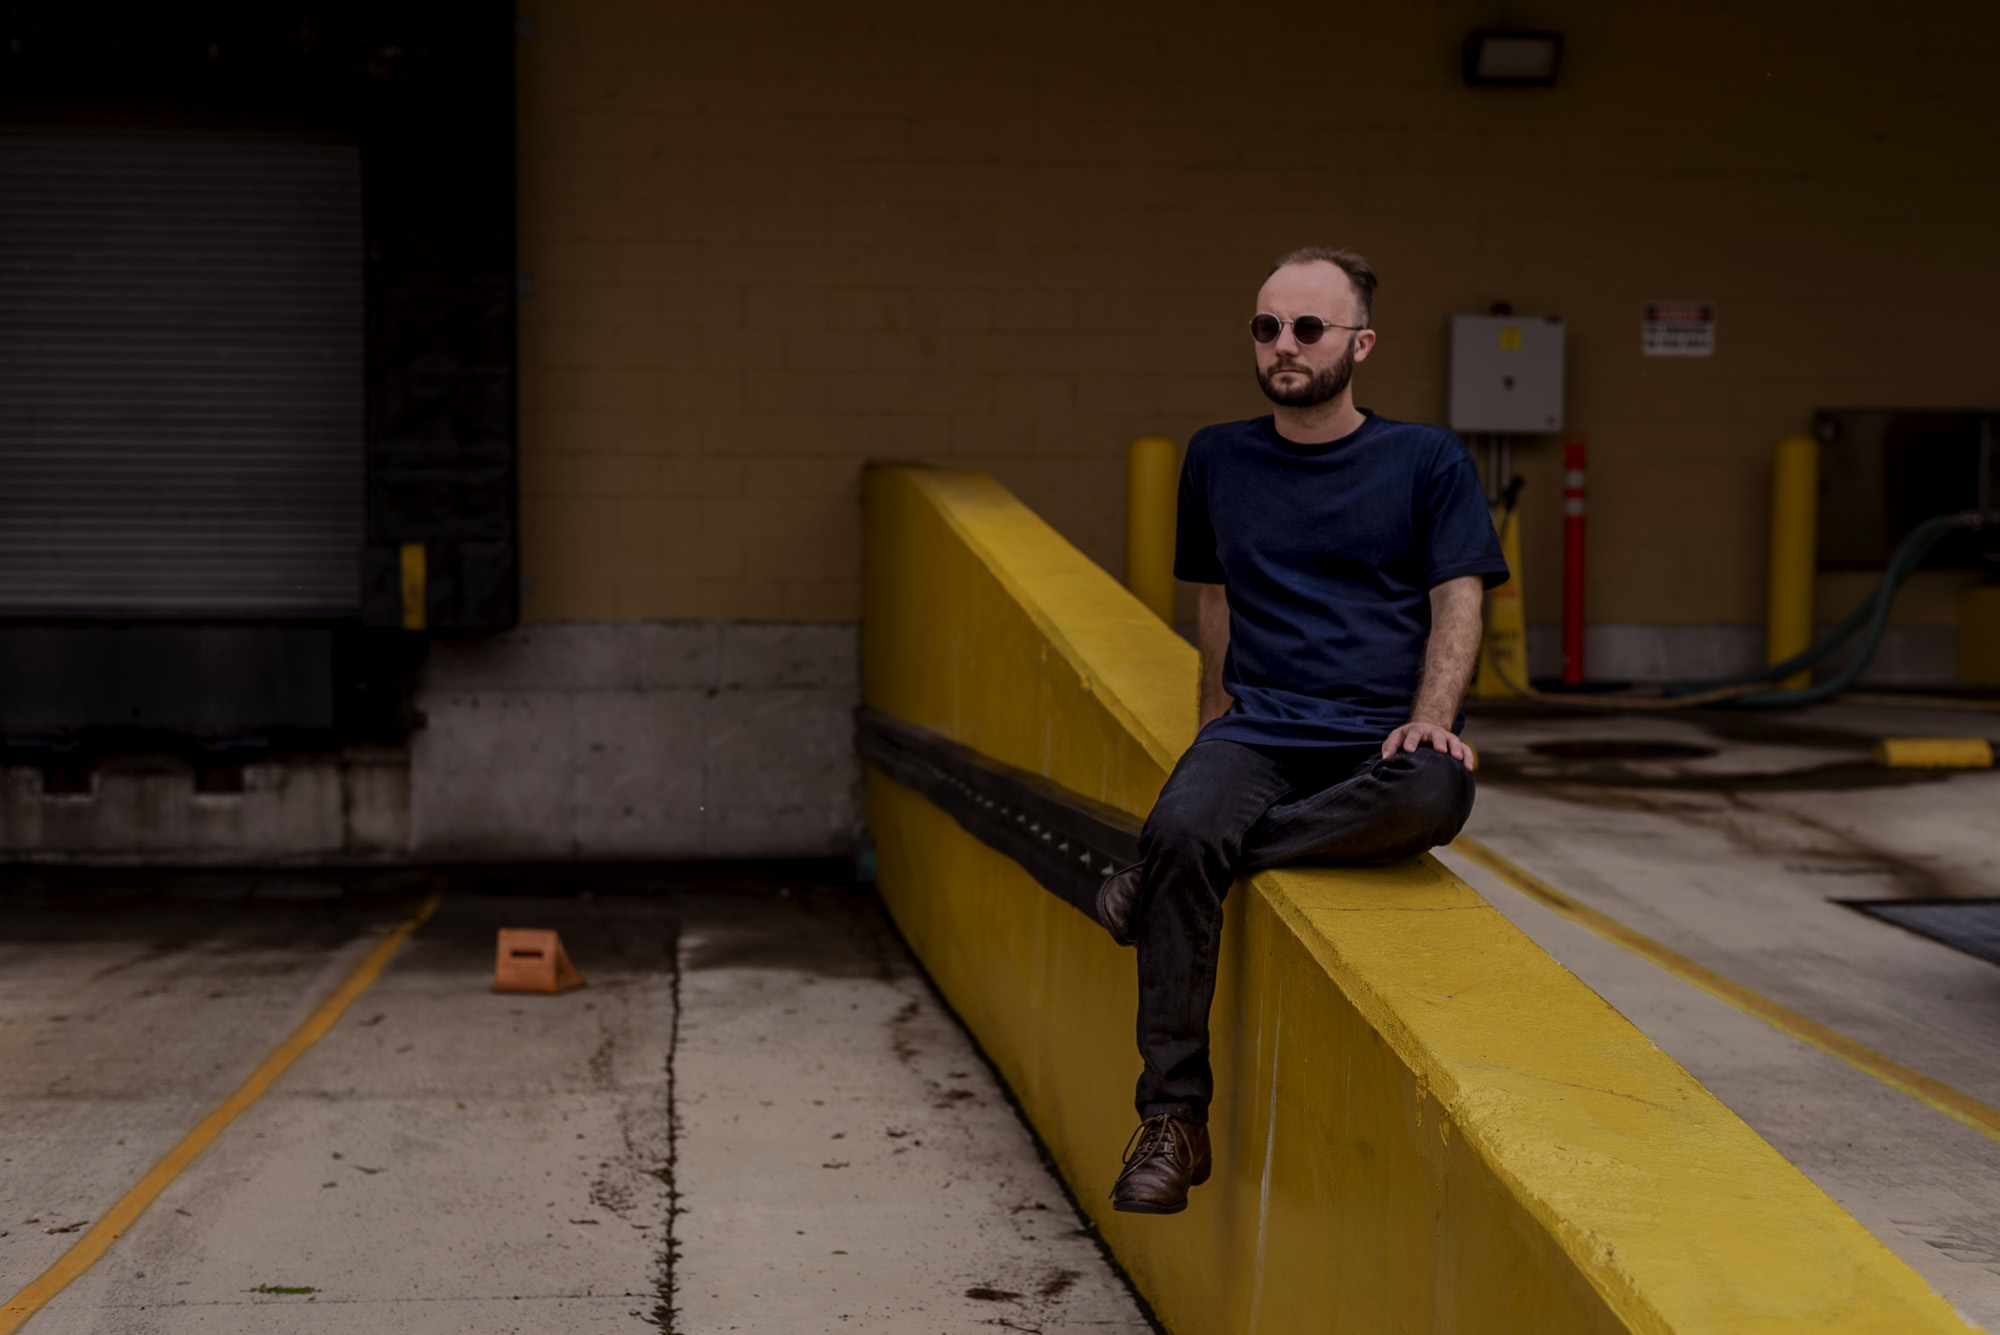 Featured Image: Elliot J. Reichert sits, legs crossed, on a yellow concrete platform in what appears to be the exterior of a loading dock. He's looking out to the left of the frame. Photo by Ryan Edmund.